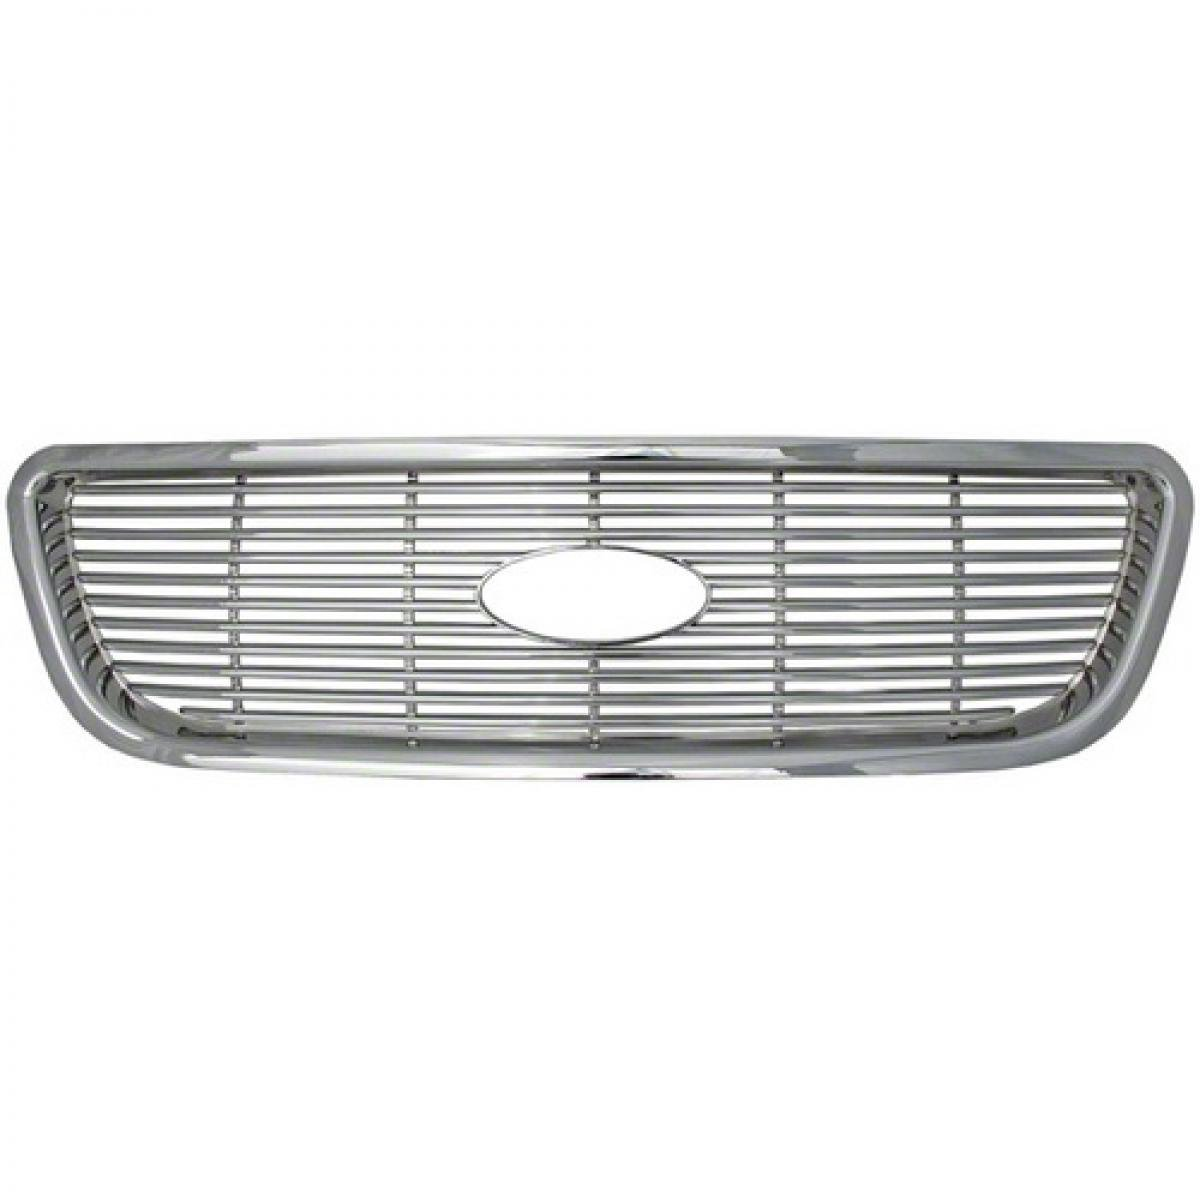 Triple Chrome Plated ABS Plastic - 4 Pieces Bully GI-113 Ford F150 Grille Overlay